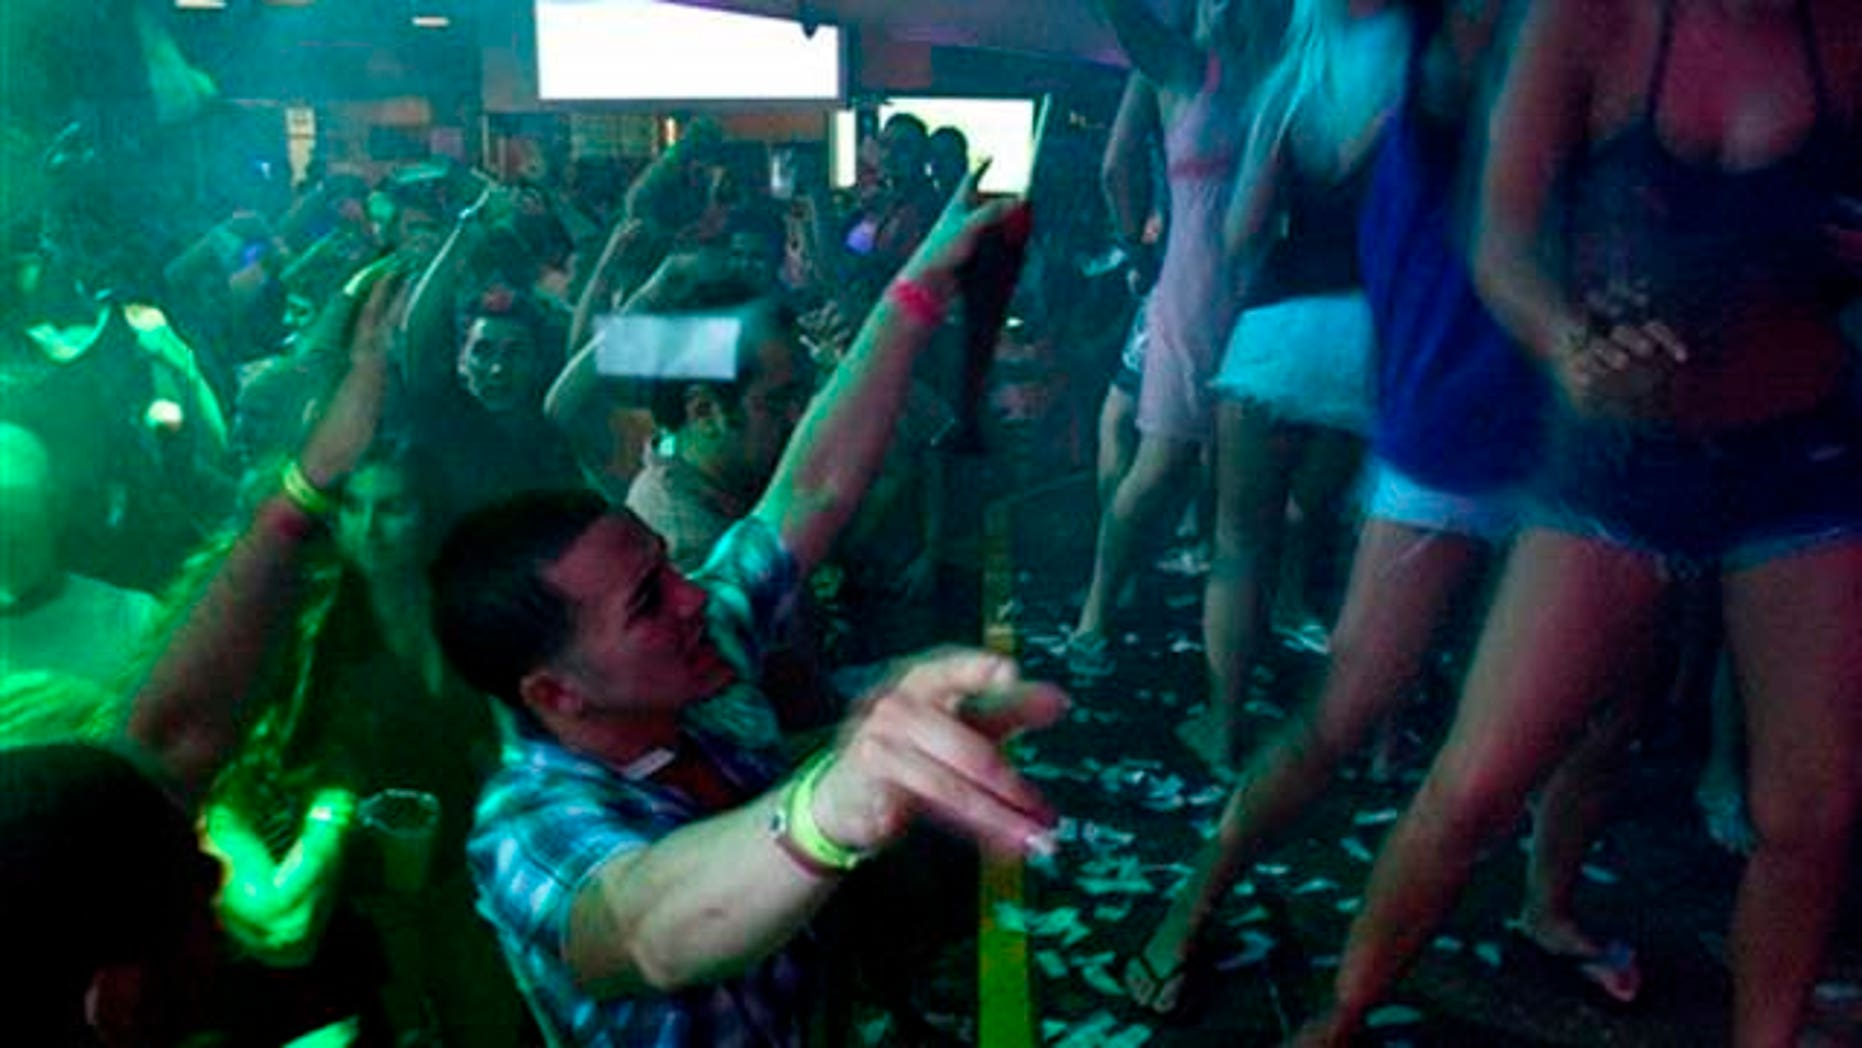 FILE-   This Thursday, March 18, 2010 file photo shows spring break revelers as they dance at the Senor Frog's nightclub in Cancun, Mexico. Despite headlines about Mexico's violent drug war, tourism remains relatively strong this year and Cancun is still expecting spring-breakers.   (AP Photo/Israel Leal, FILE)